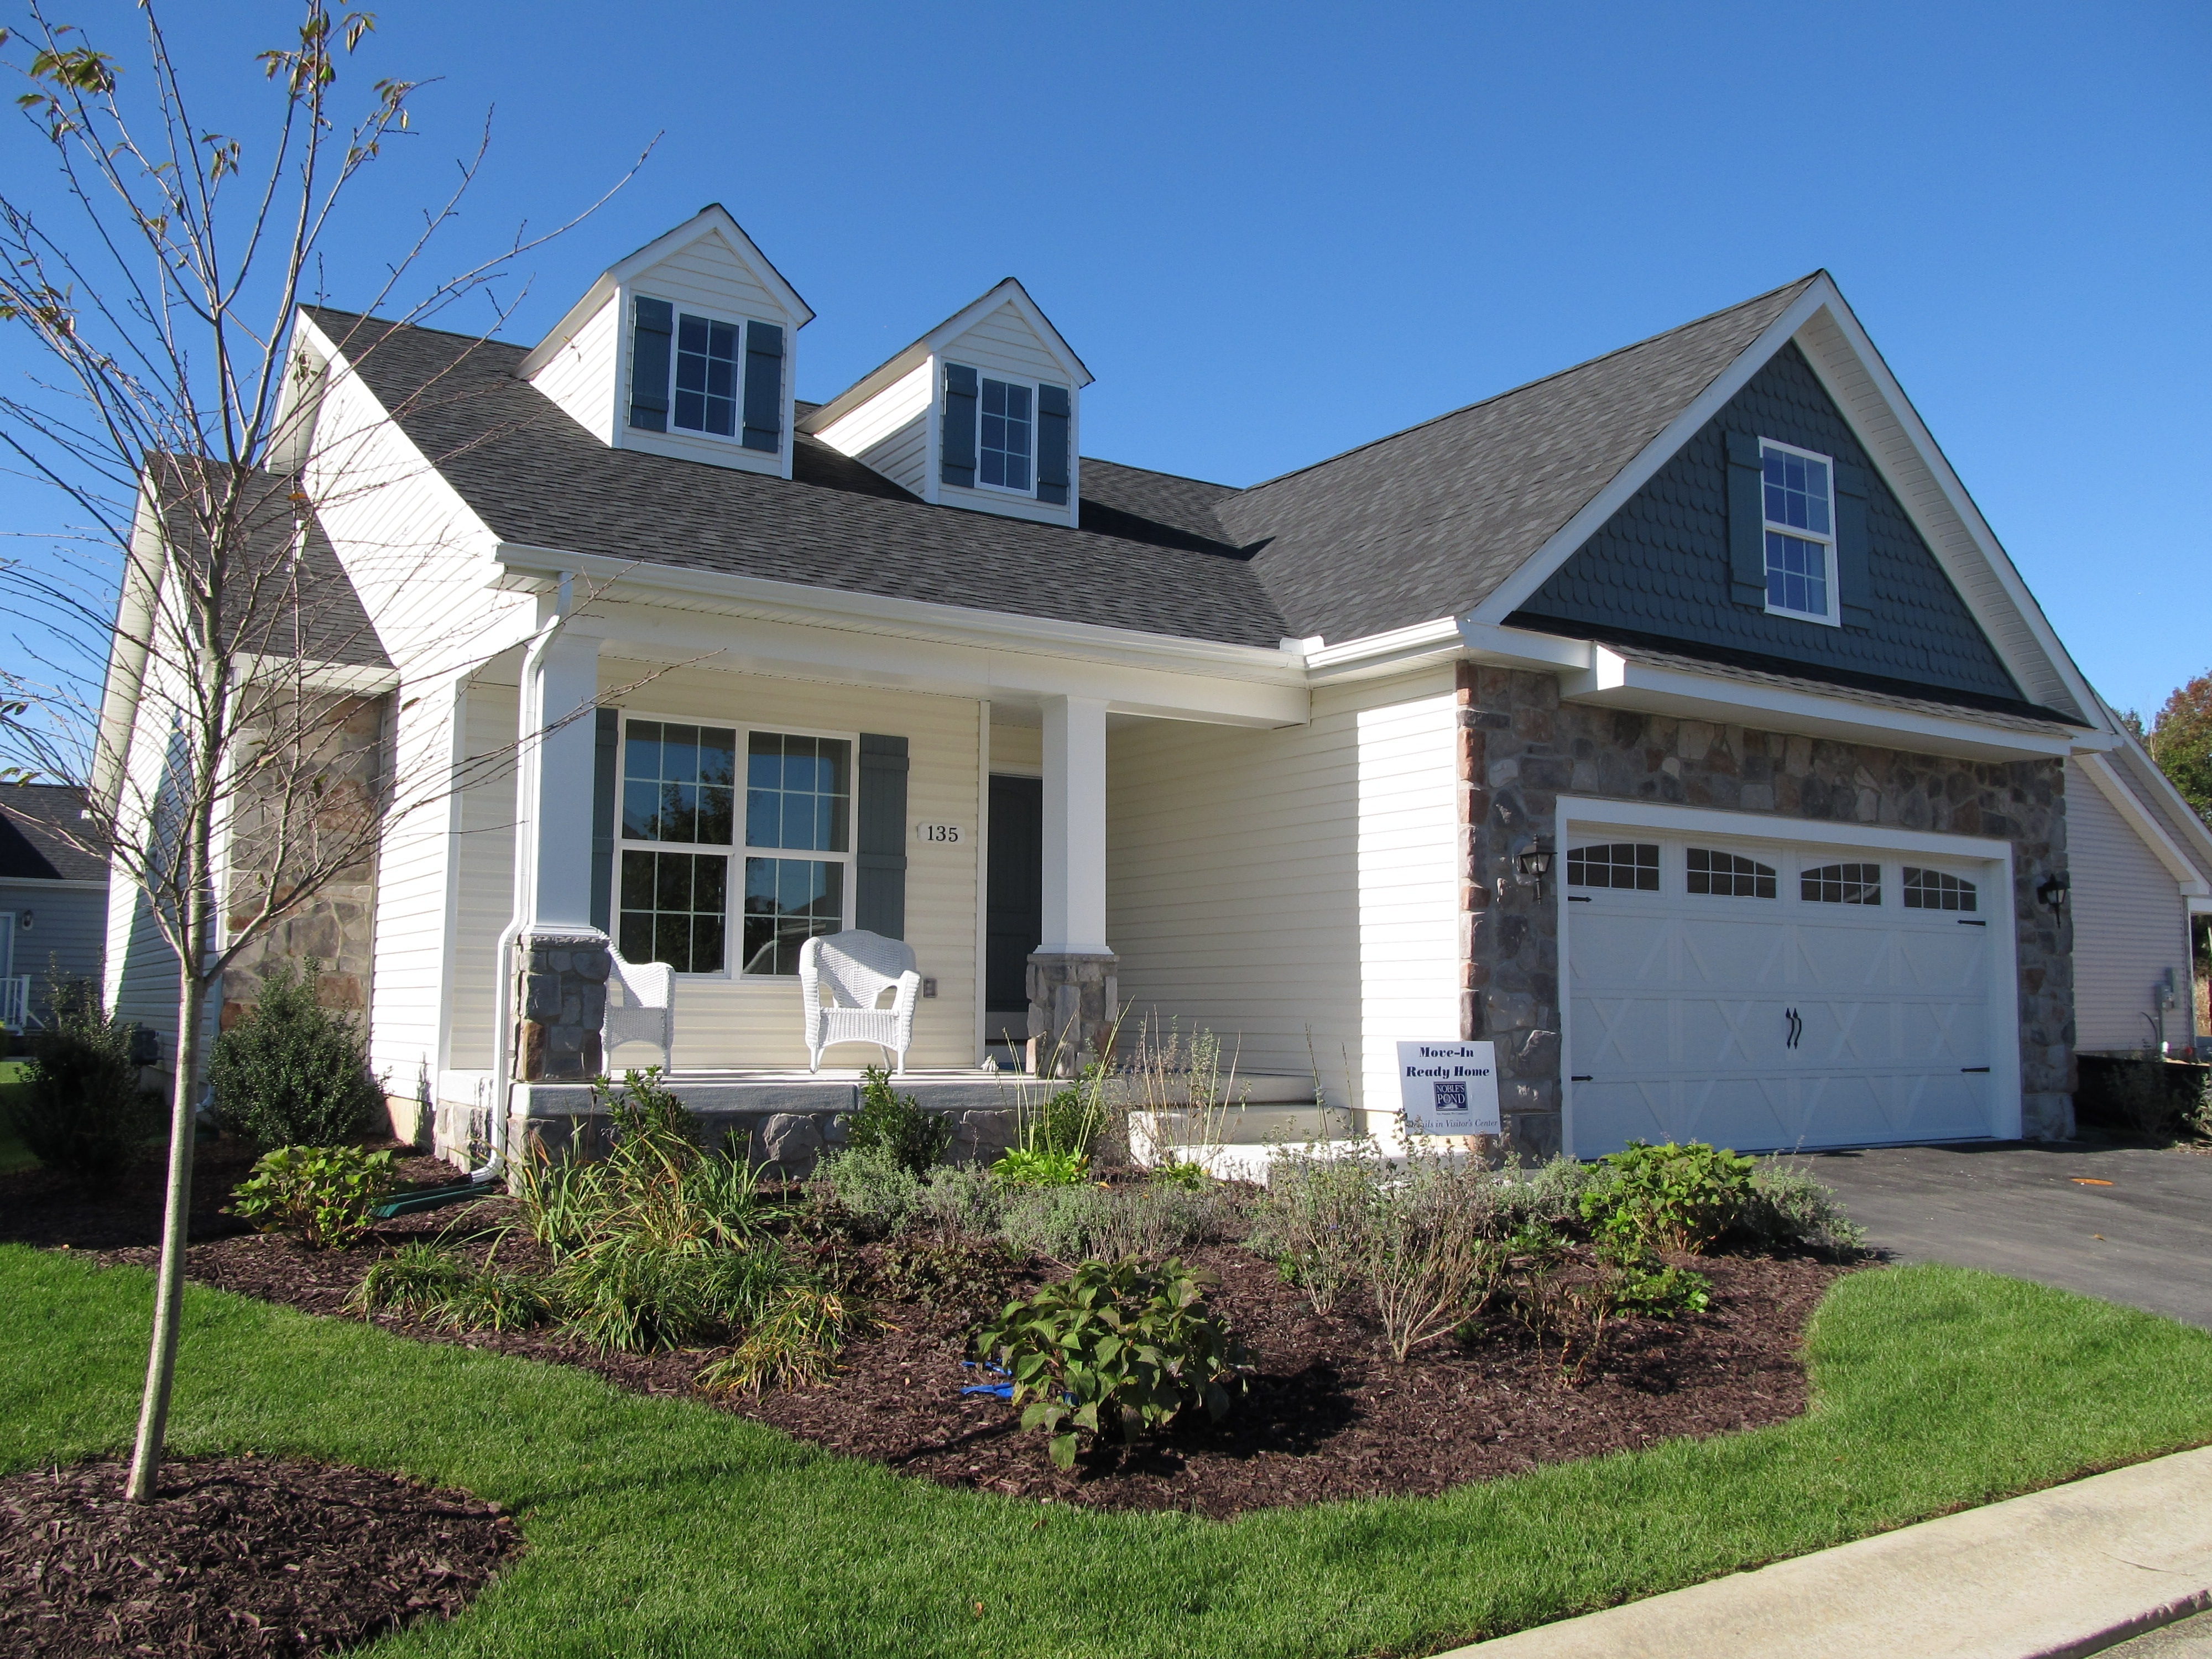 Affordable customizable homes for active adults in Delaware's Noble's Pond community.